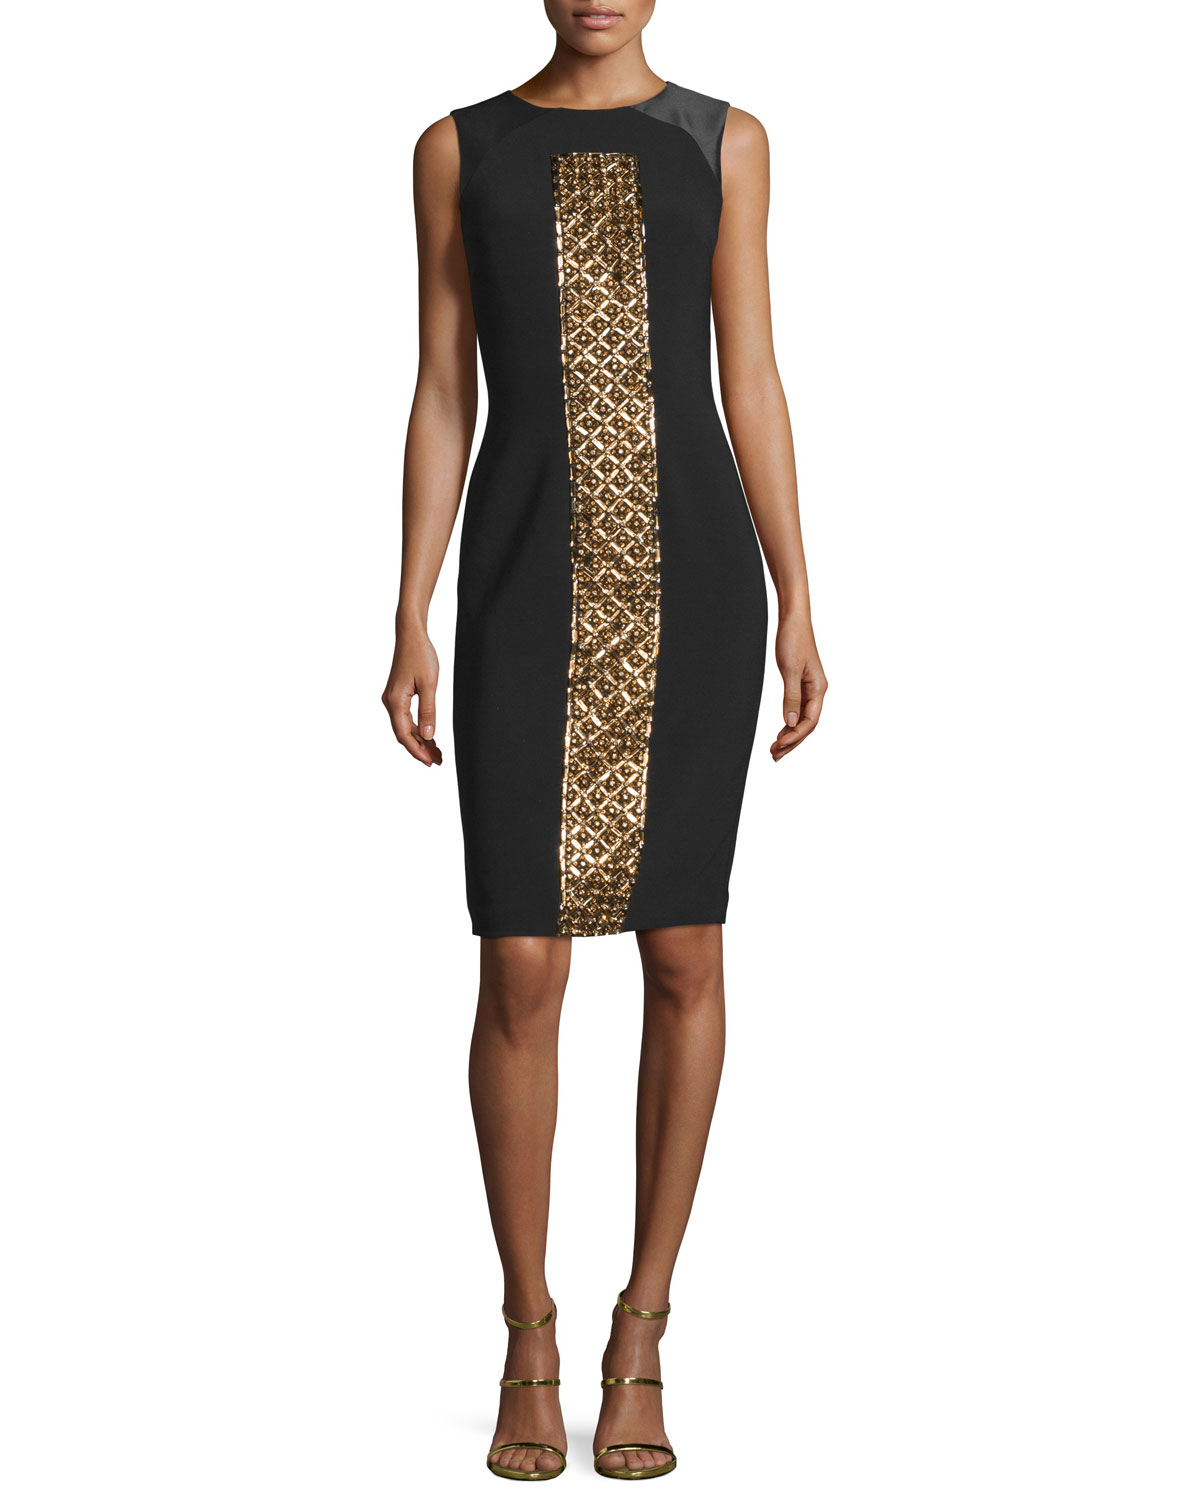 Sleeveless Beaded Cocktail Dress, Black/Gold